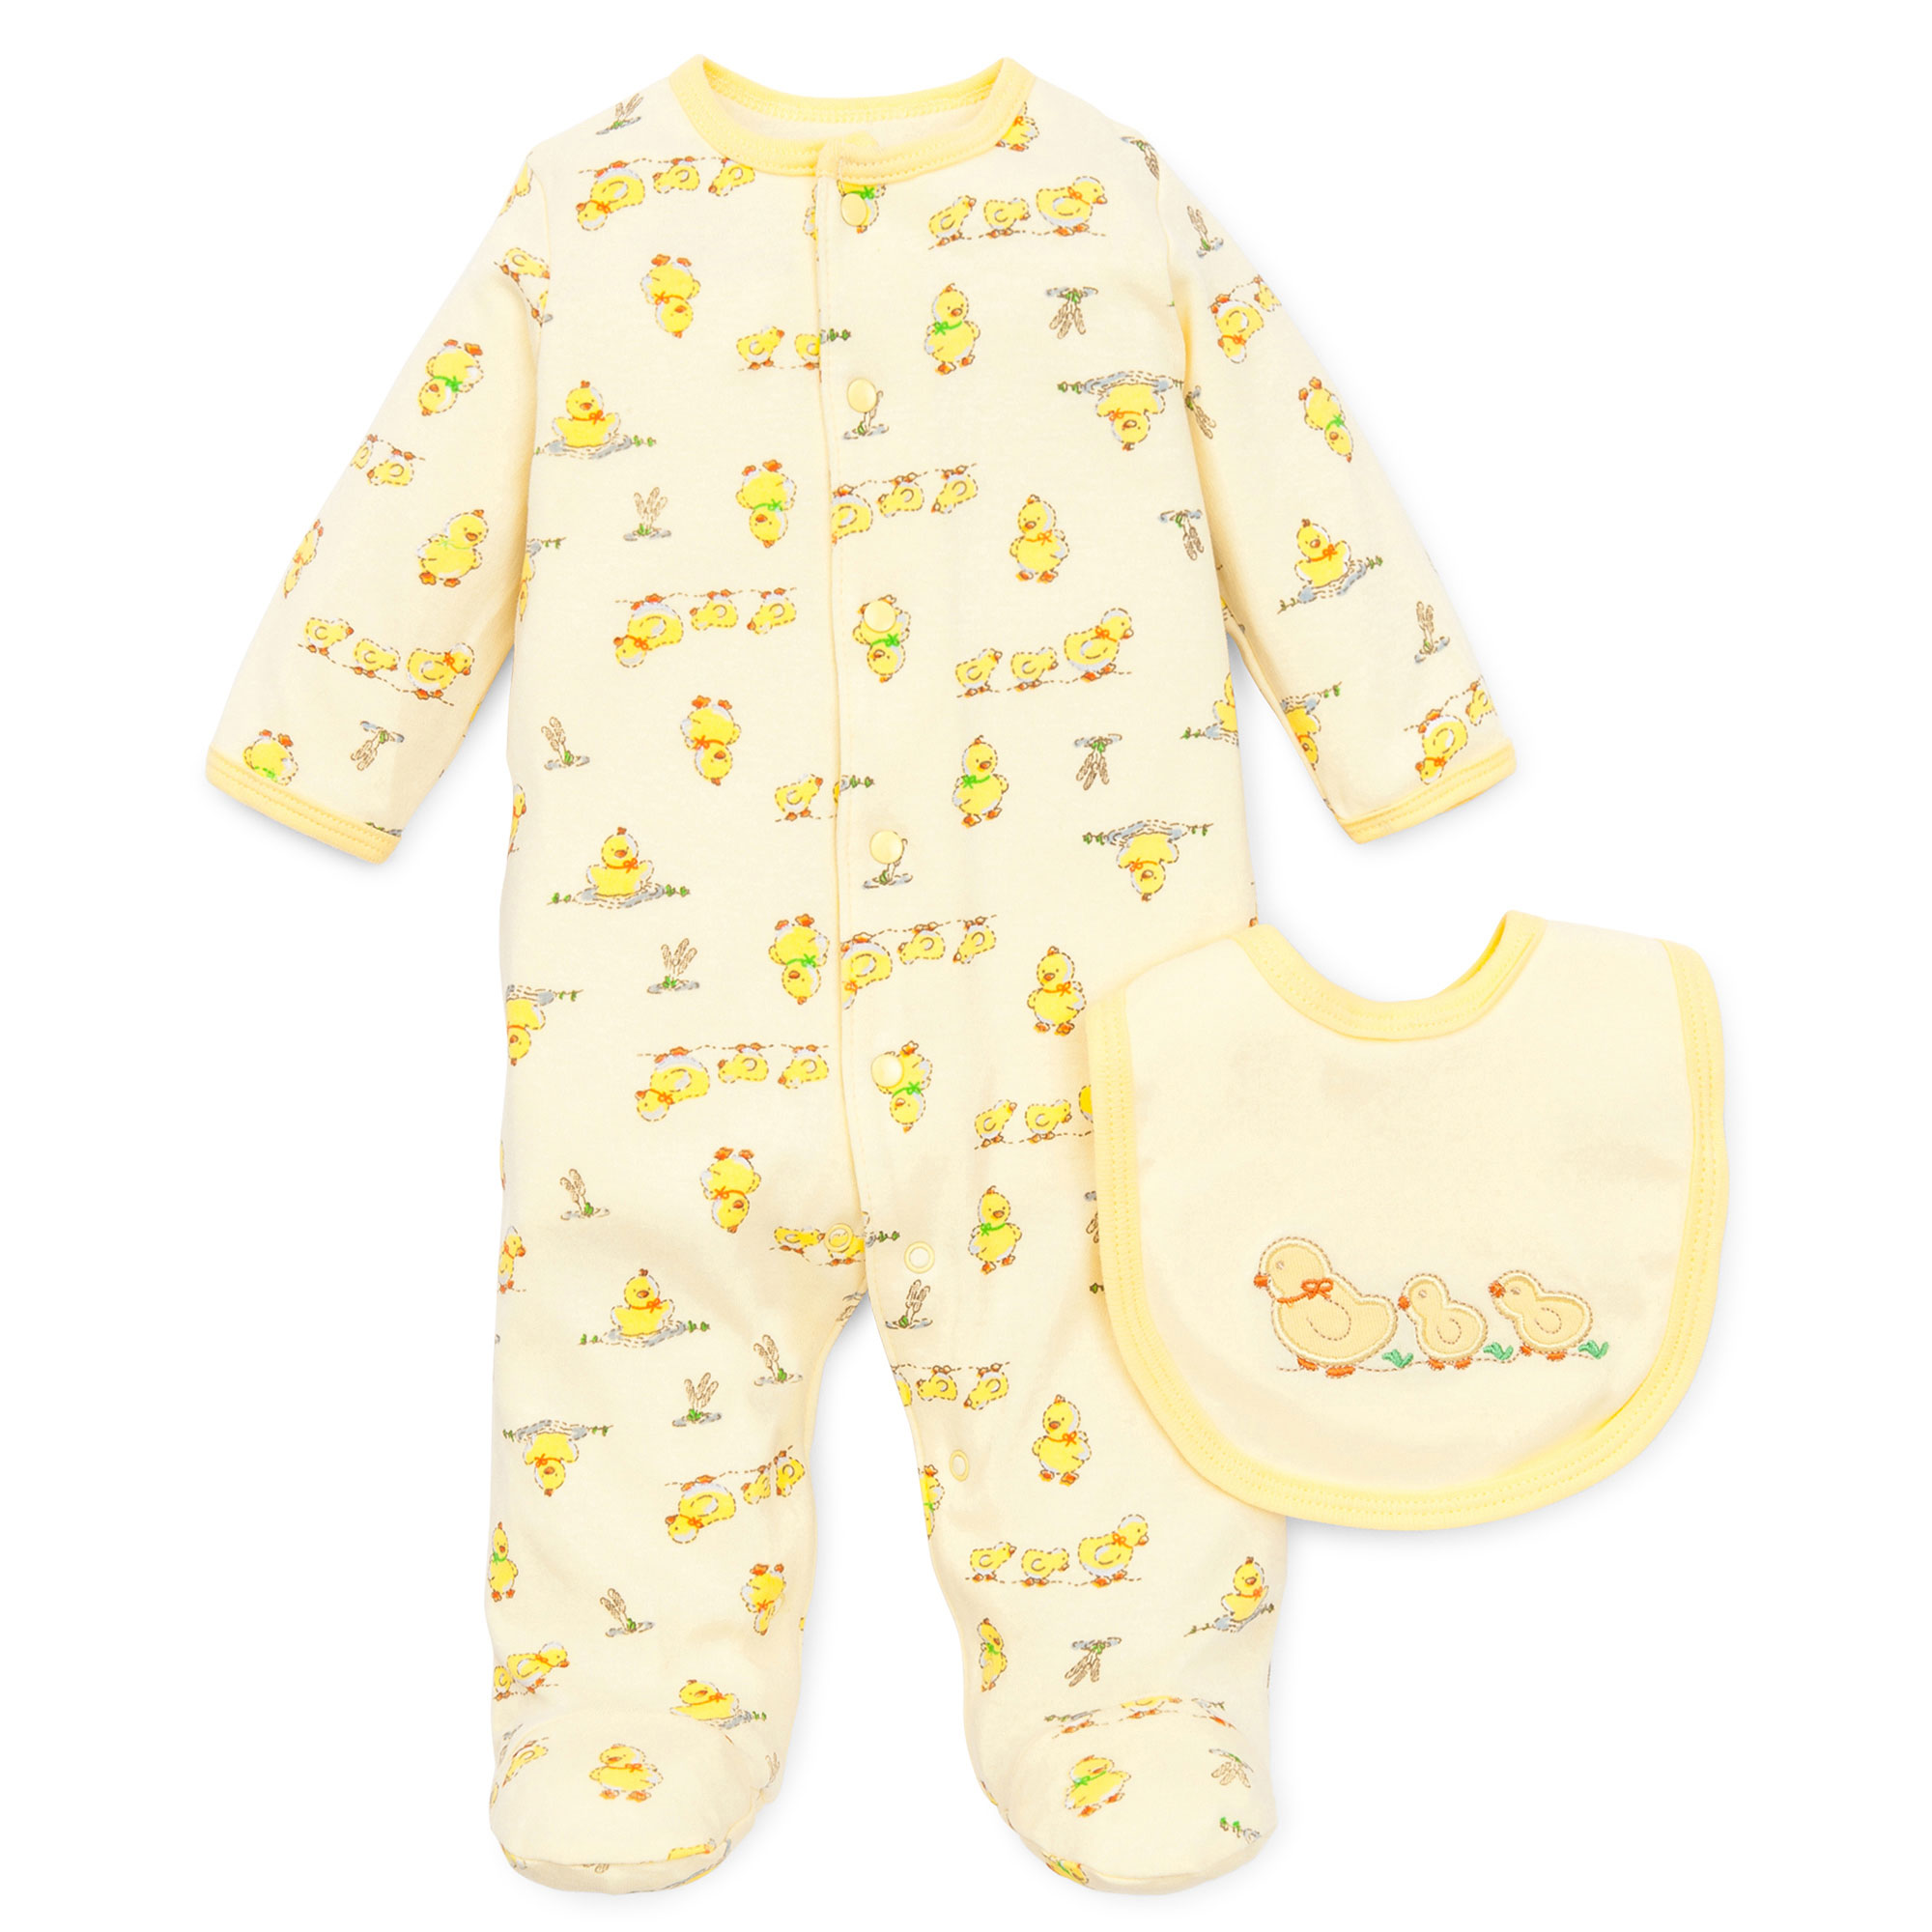 Little Me Unisex Yellow Duck Snap Front Footie Pajamas For Baby Boys or Baby Girls with Bib Sleep N Play One Piece Romper Coverall Infant Footed Sleeper; Pijamas Para Bebes -Yellow Ducks -  Newborn